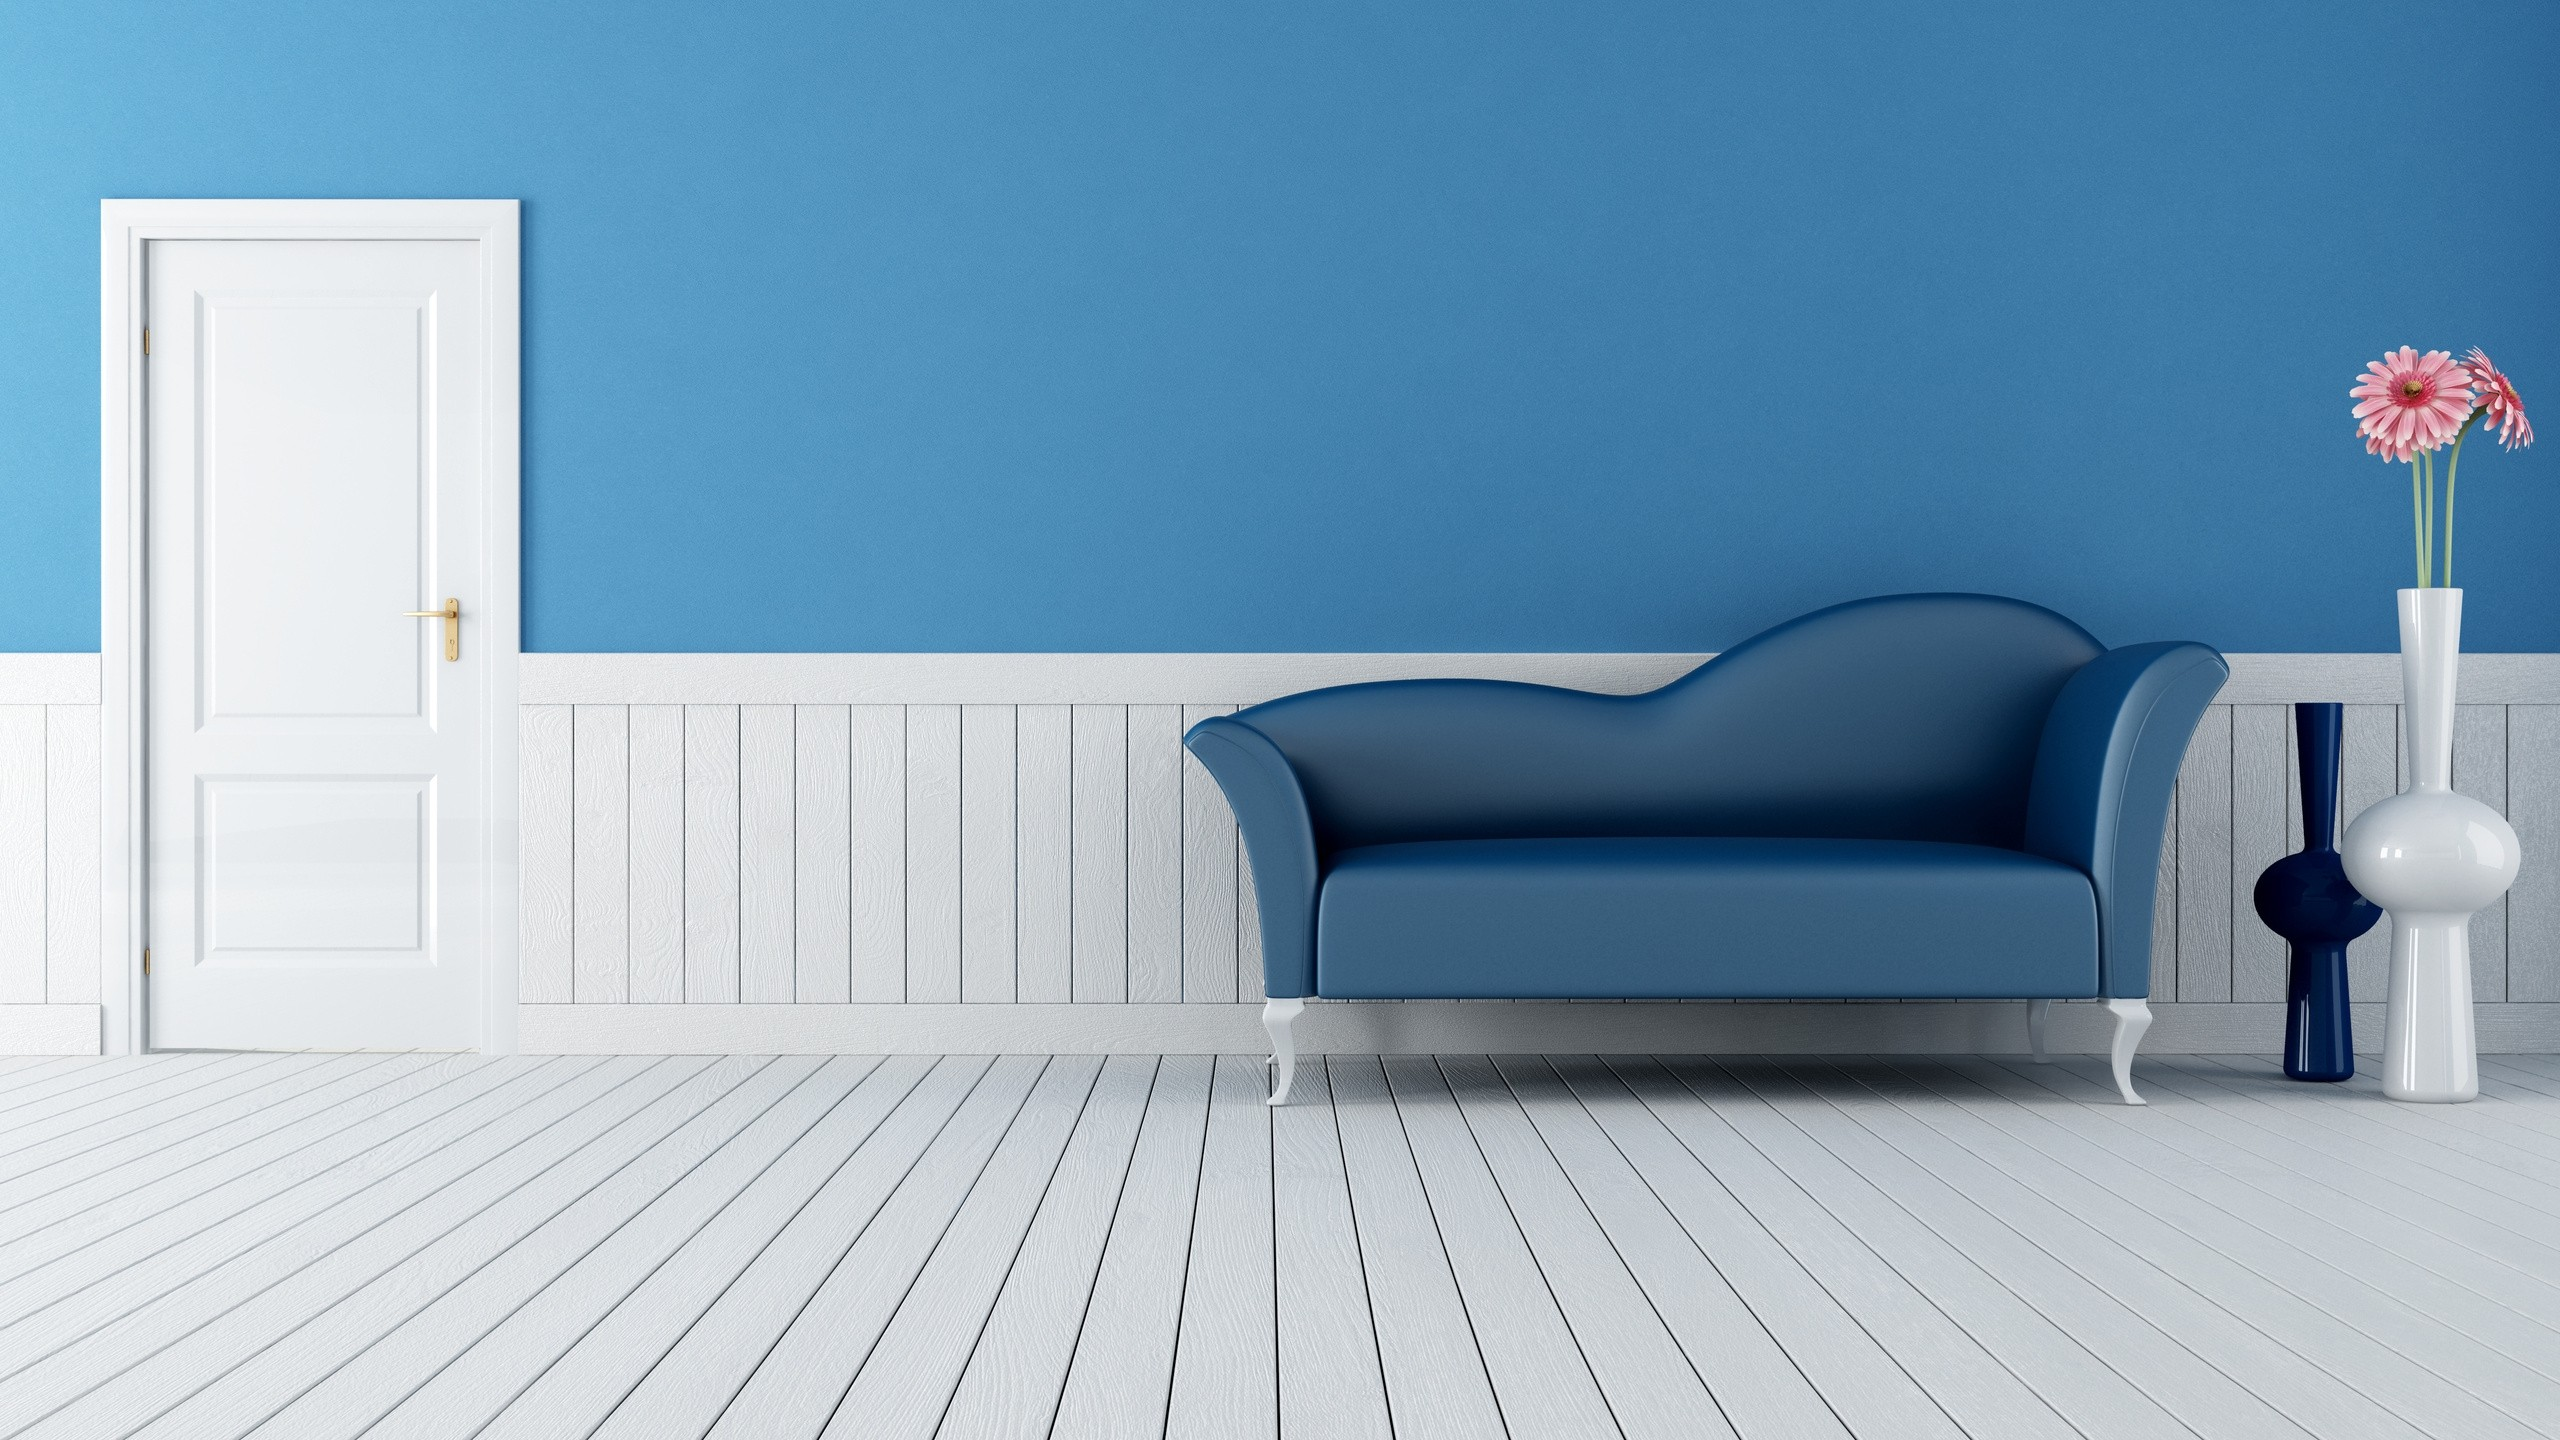 Free Couch Wallpaper